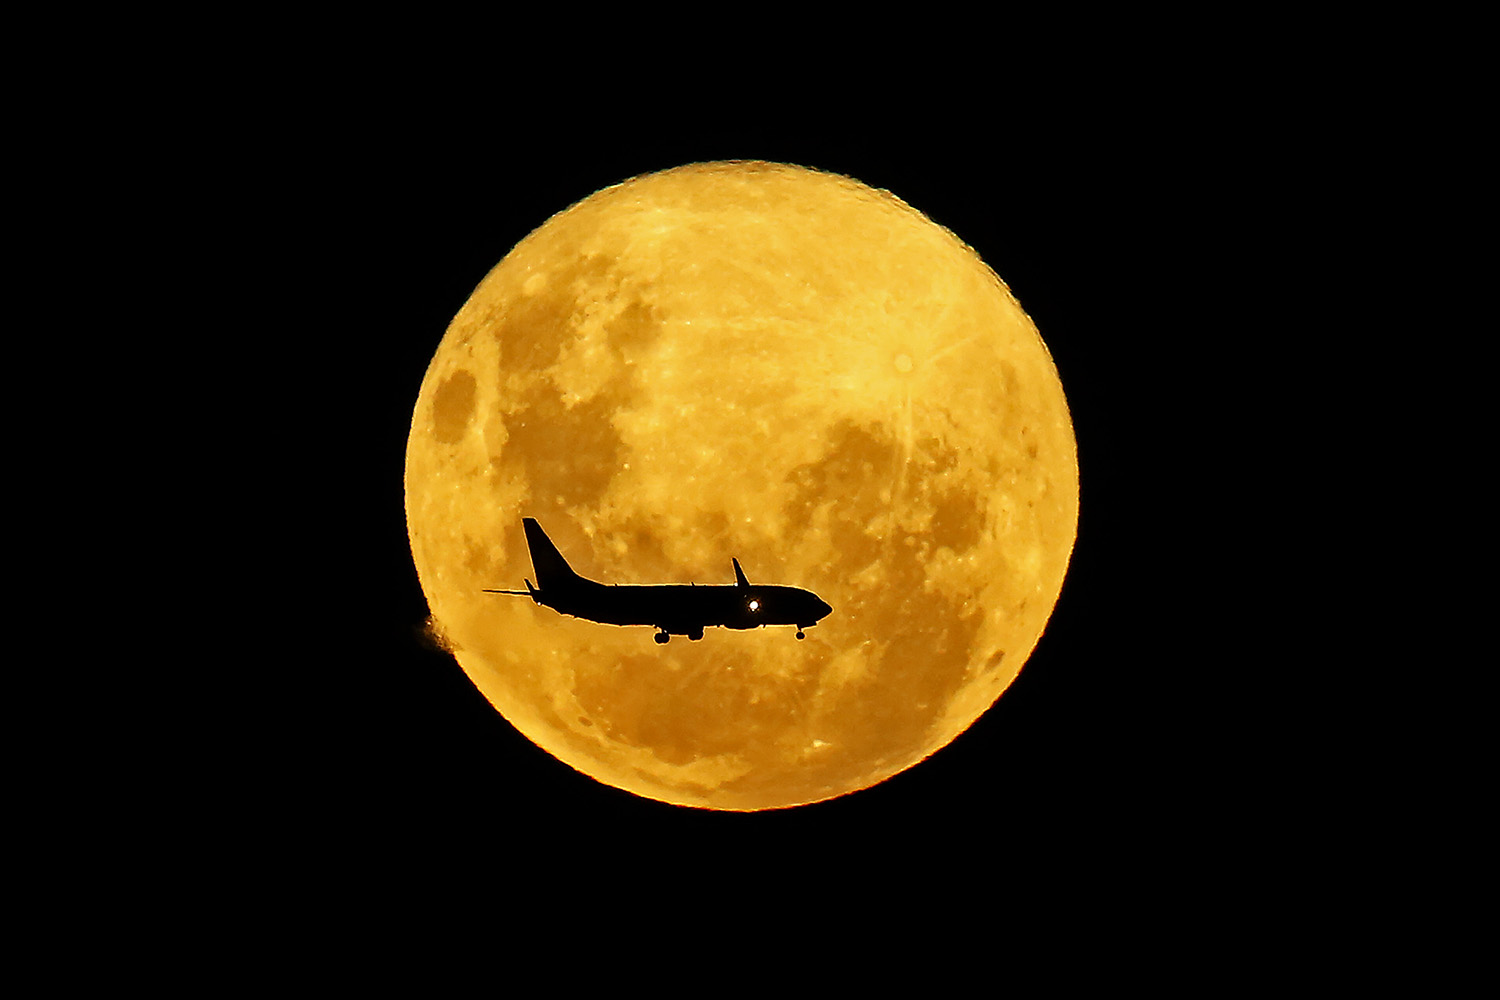 A plane passes in front of the full moon as seen from Curitiba, Brazil, on March 9. HEULER ANDREY/AFP via Getty Images